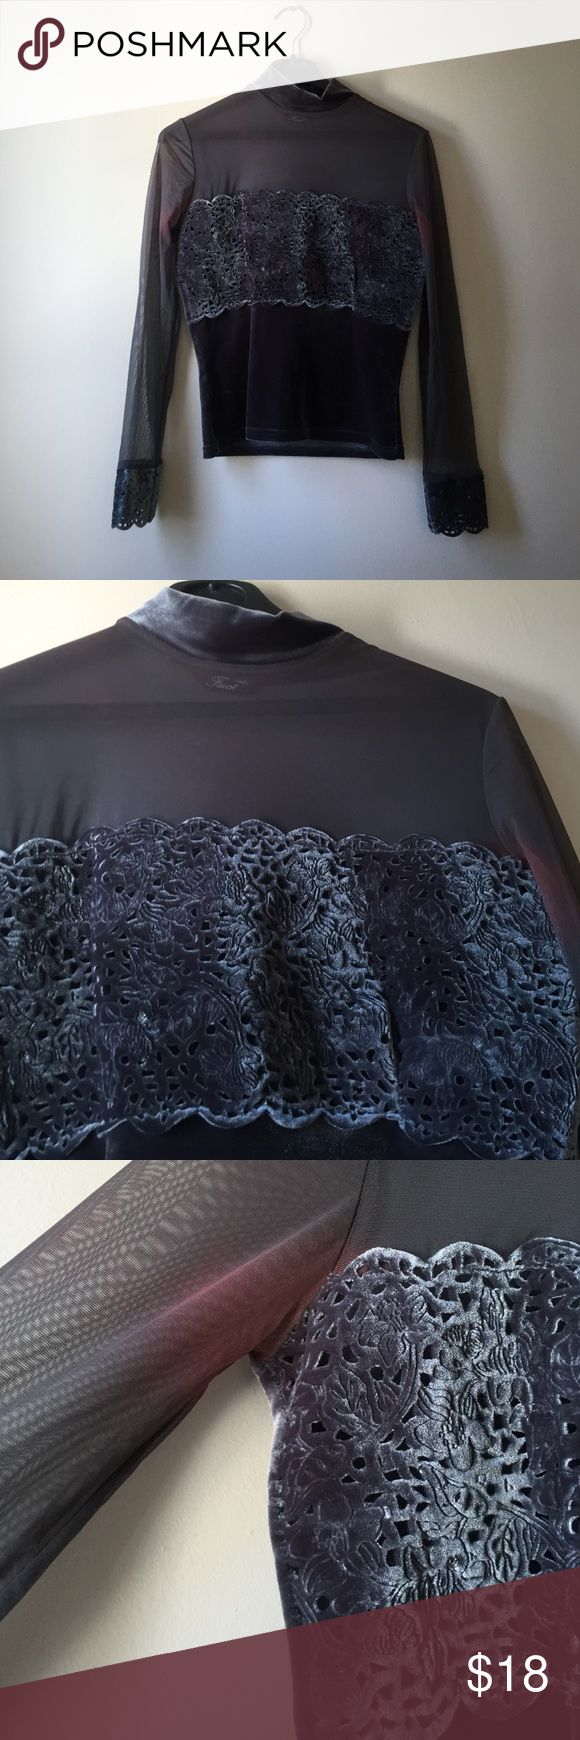 Grey velvet and sheer top from Faust Paris. Grey velvet on the bottom of the shirt and the collar. On the top of the shirt it's sheer gray. Very beautiful intricate designs. The brand is Faust Paris. Has discoloration on the underarms as photographed Faust Paris Tops Blouses